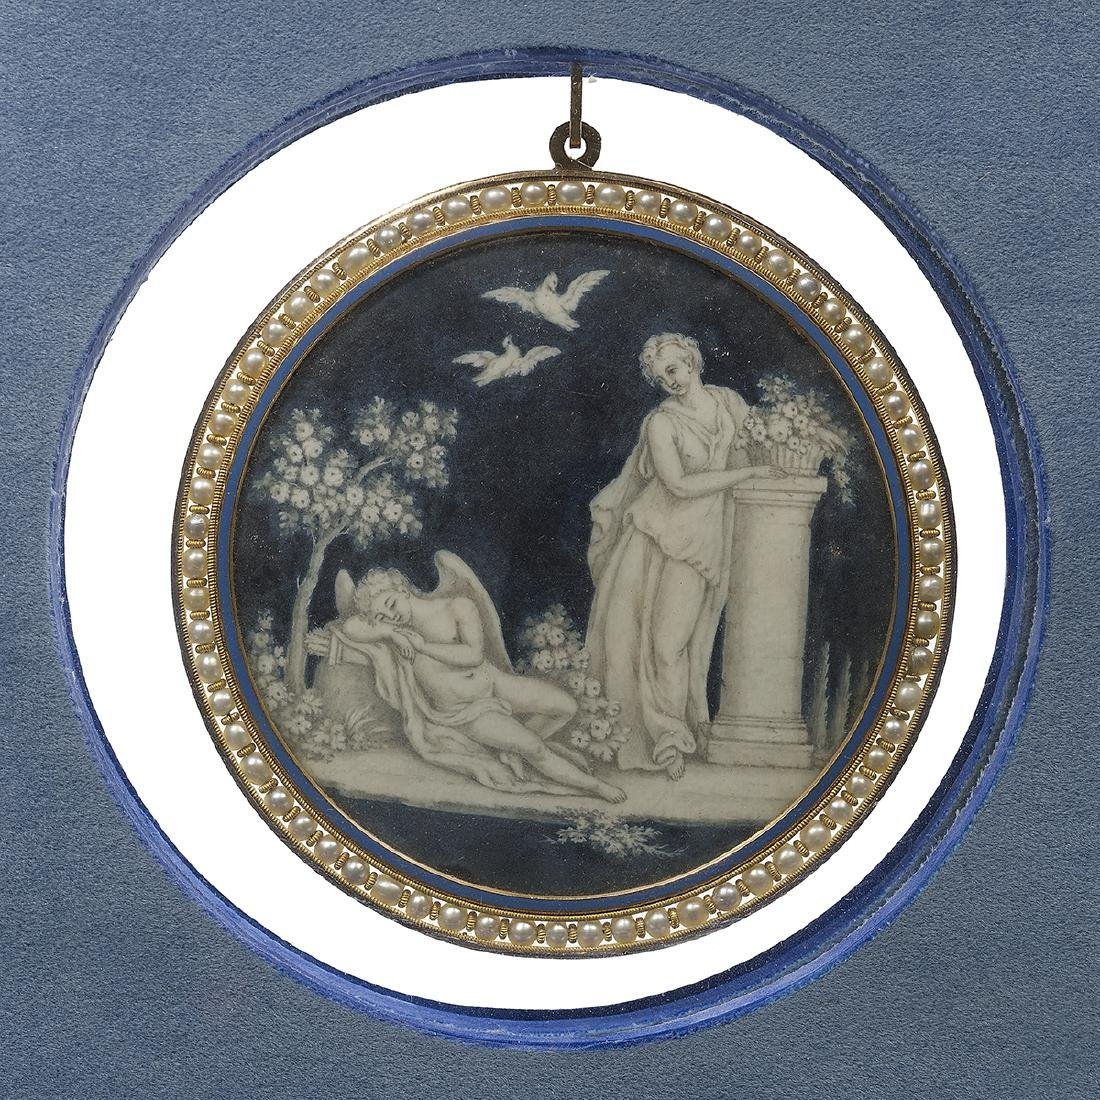 Attr. to J.-Jos. de Gault (French, ca. 1738-1812) - 4